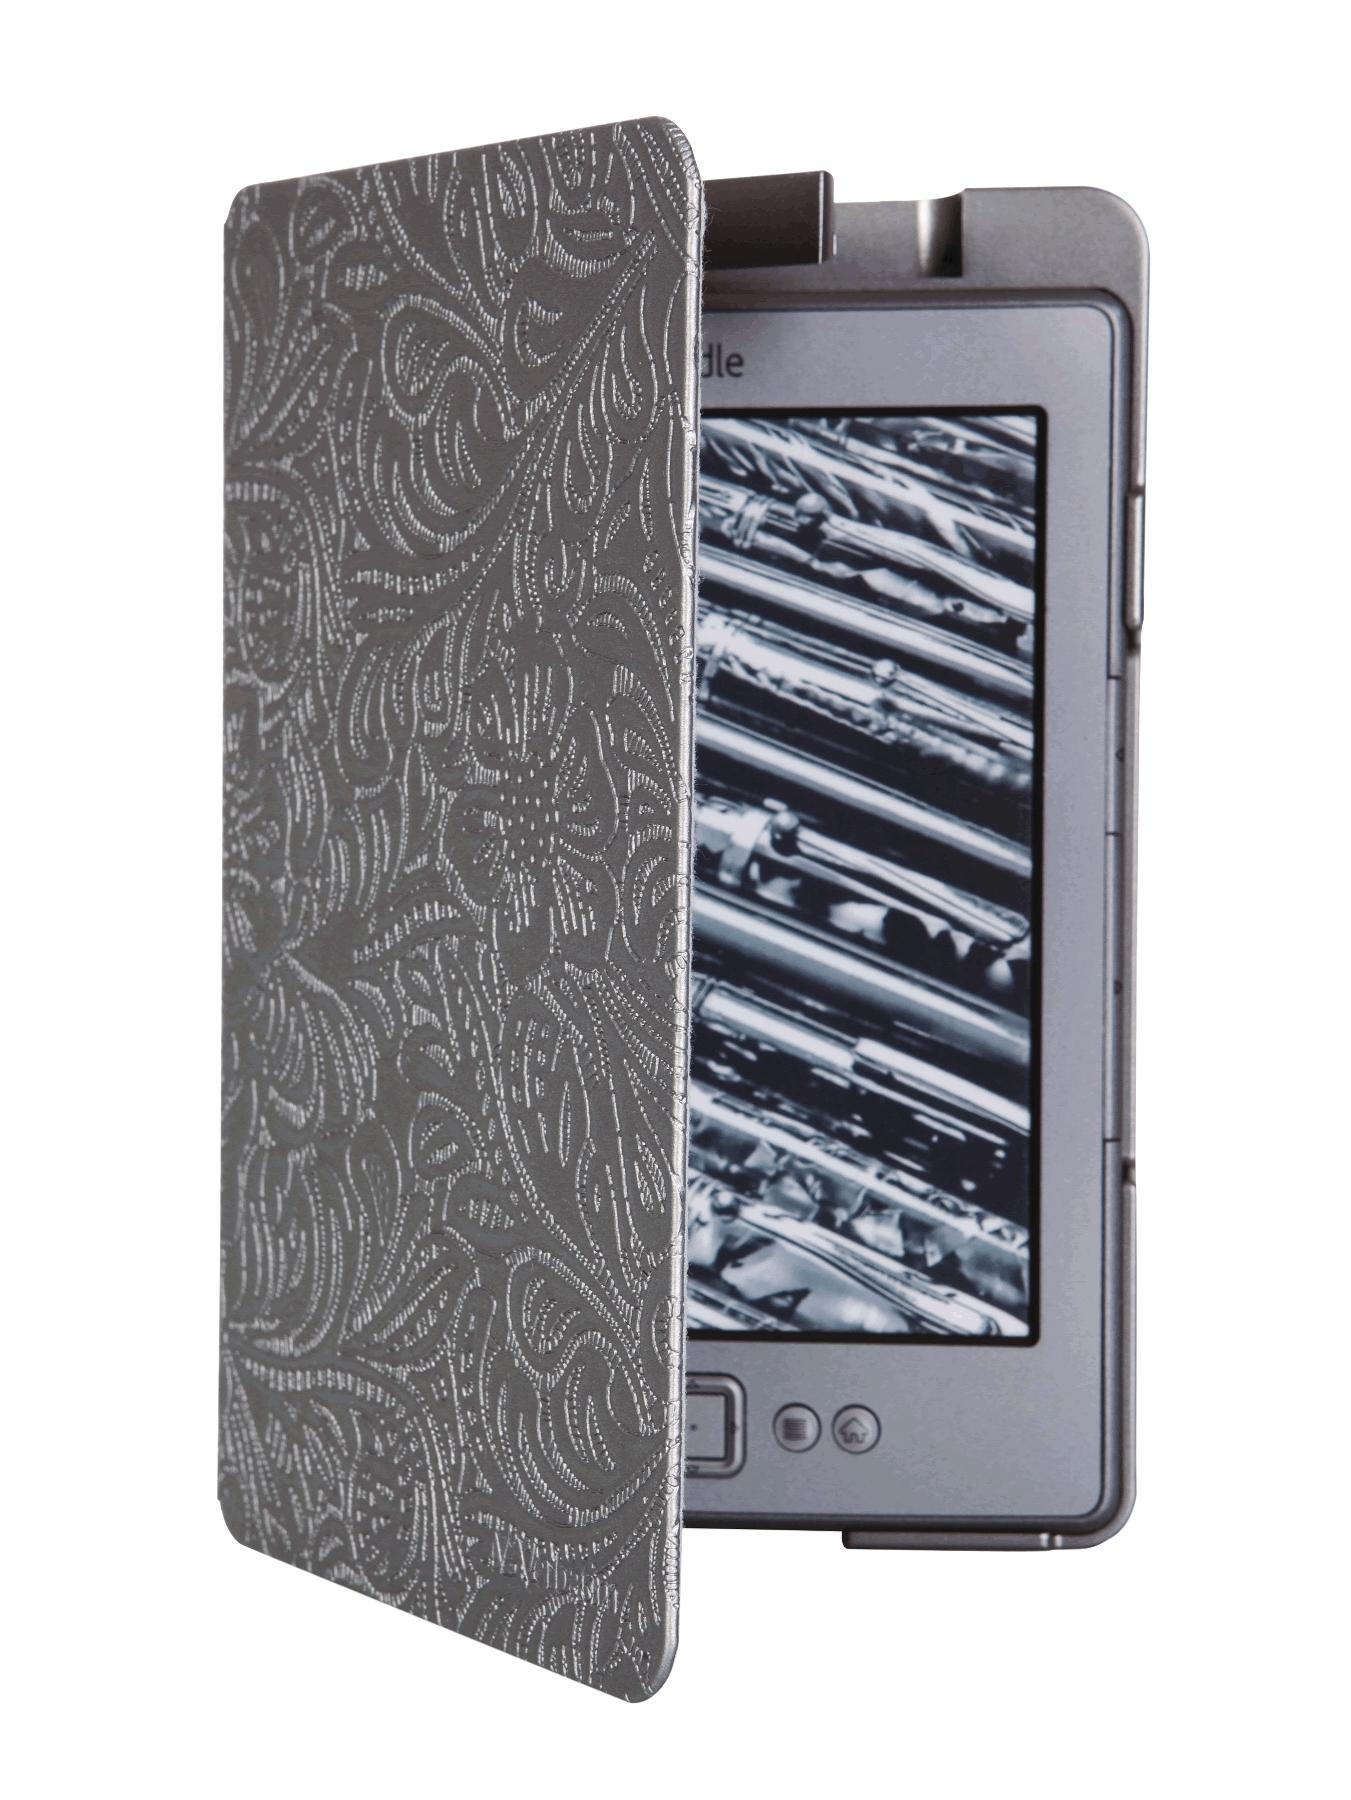 Verbatim Kindle 6 inch E-Ink Case - Grey, Grey